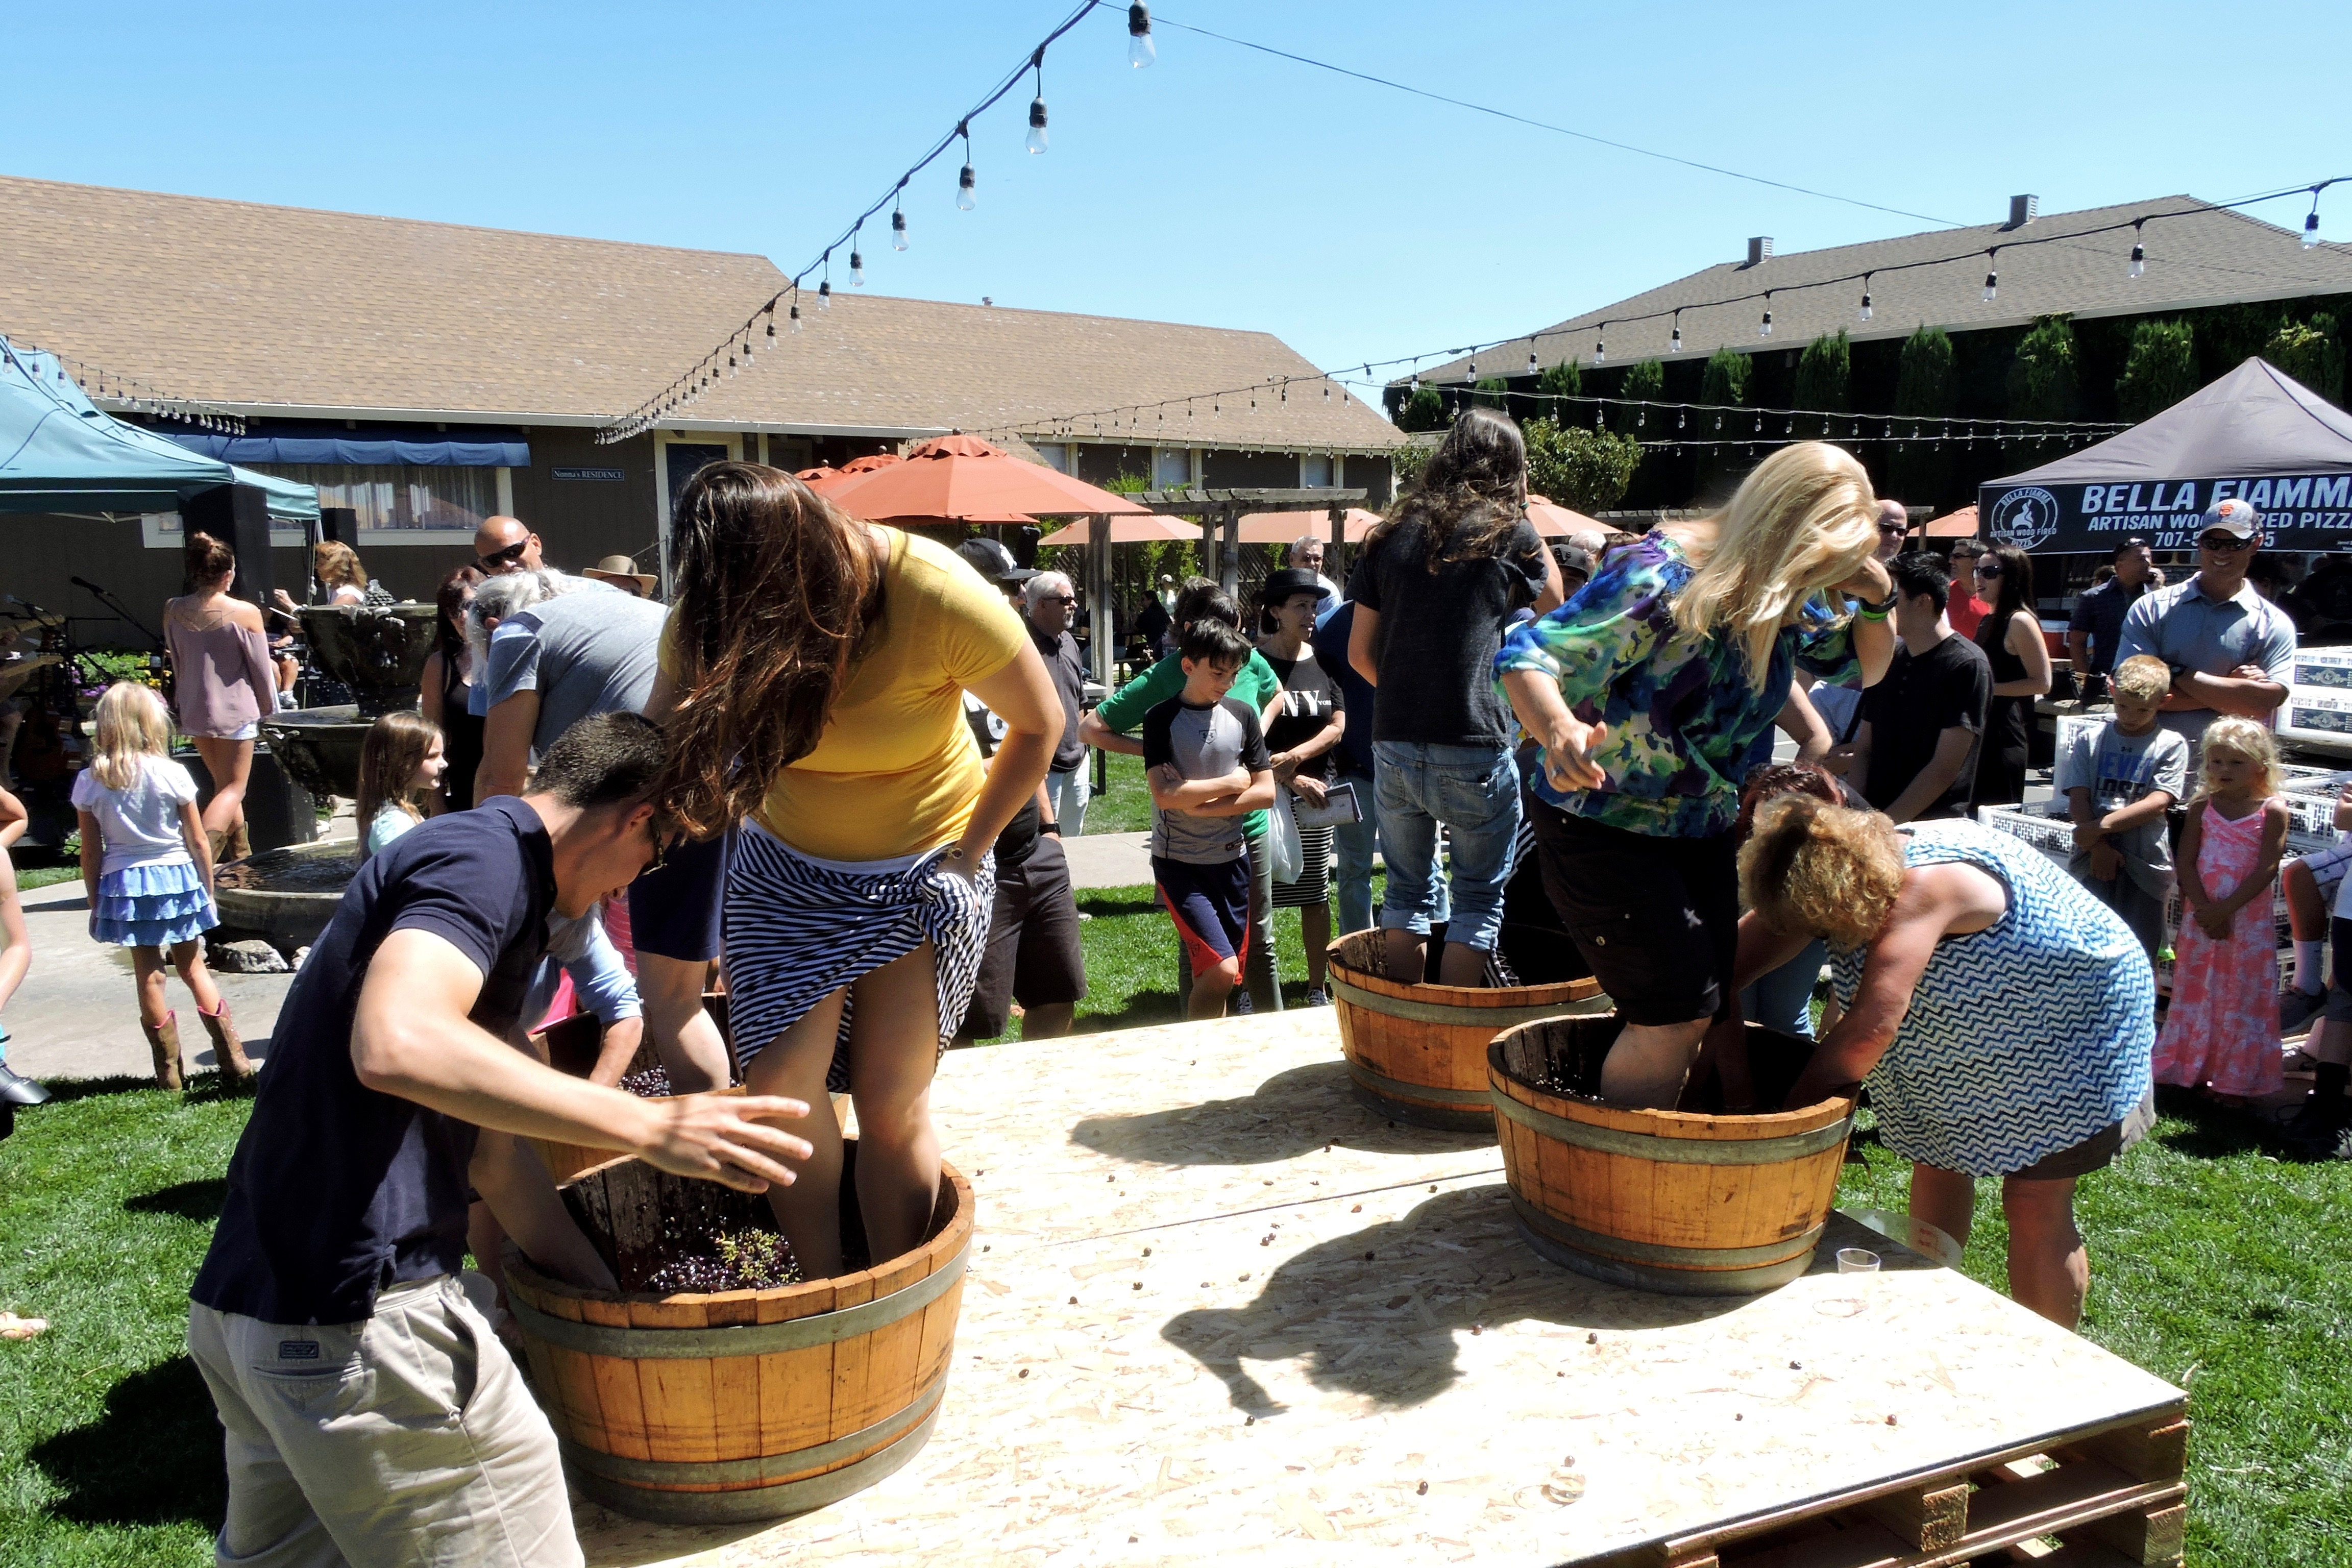 The grape stomping contests at Wooden Valley drew participants of all ages. All time slots were full a good 30 minutes before stomping began.